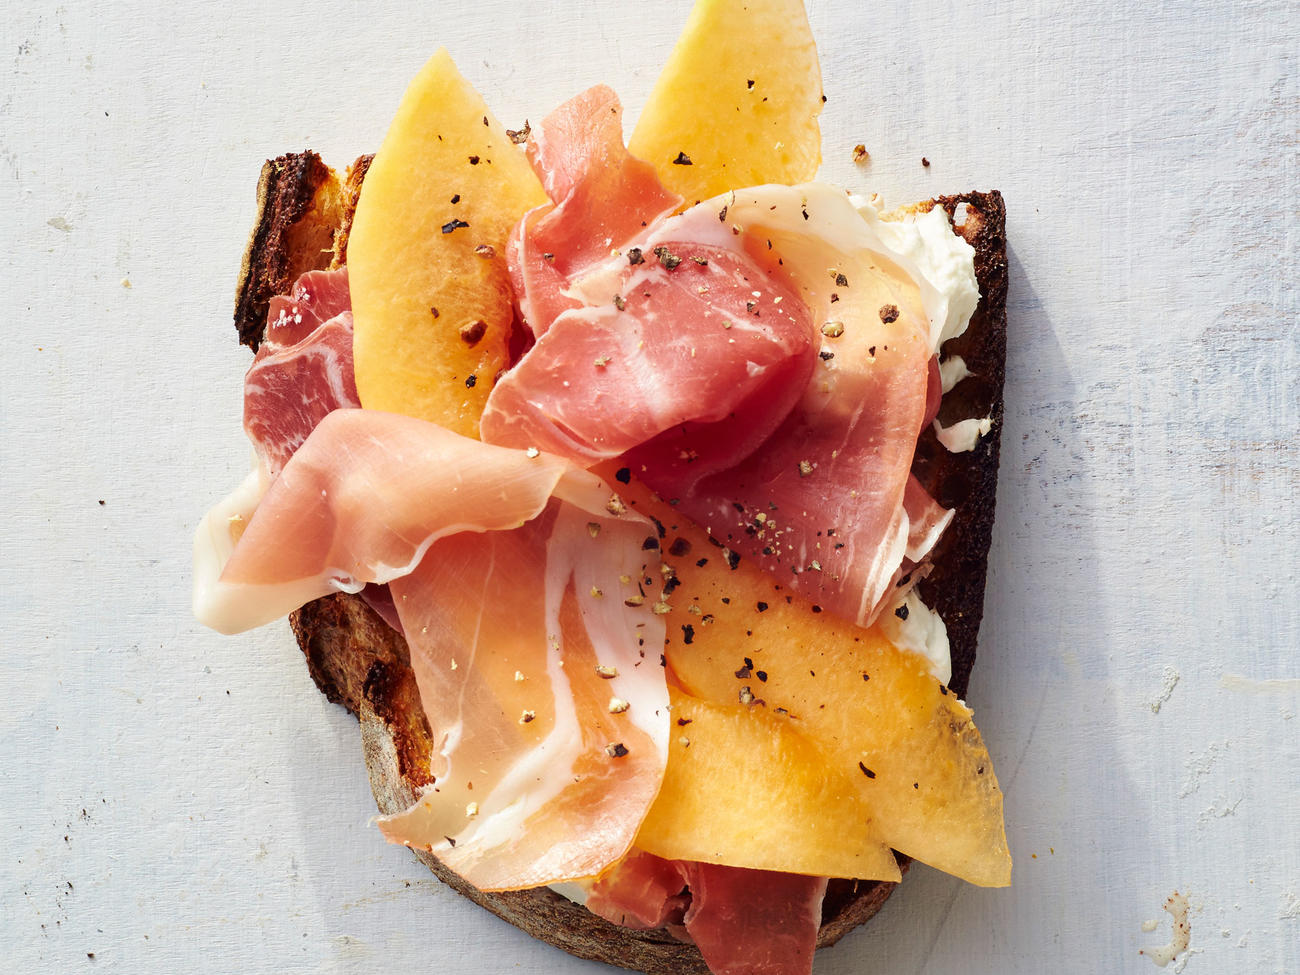 The classic combo of prosciutto and melon, just in toast form.